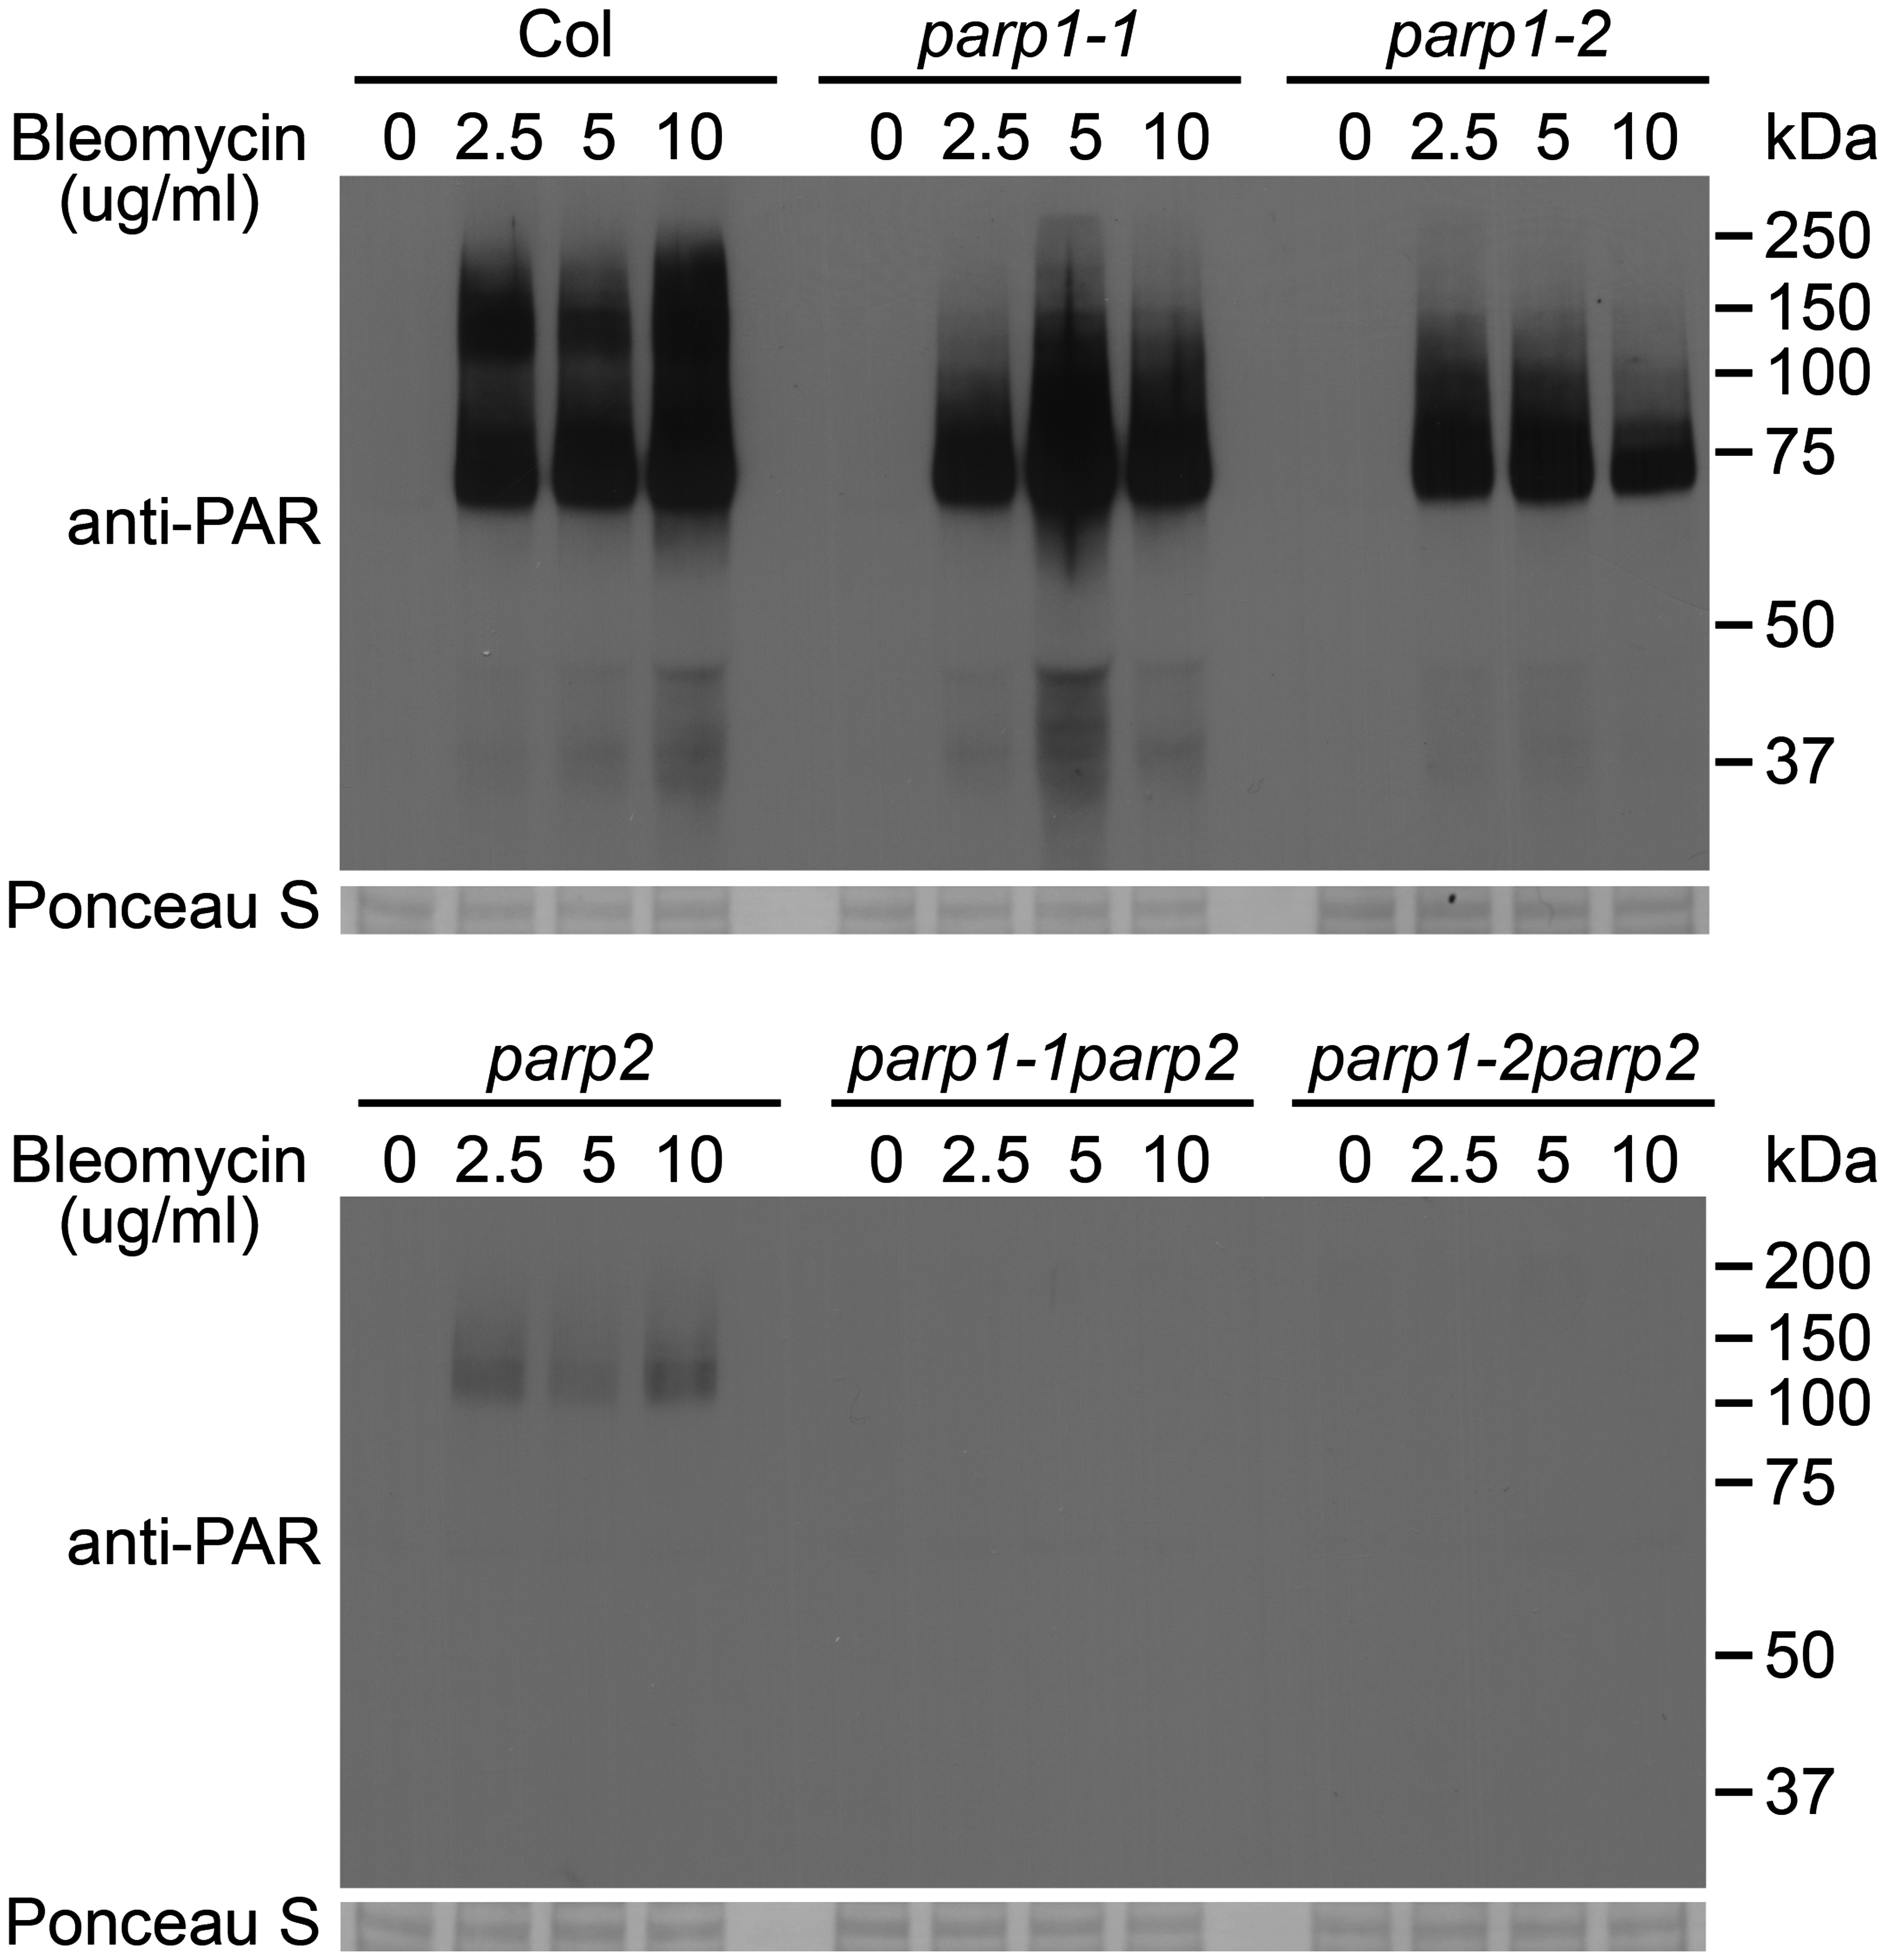 PARP2 plays a dominant role in DNA damage response after bleomycin treatment.